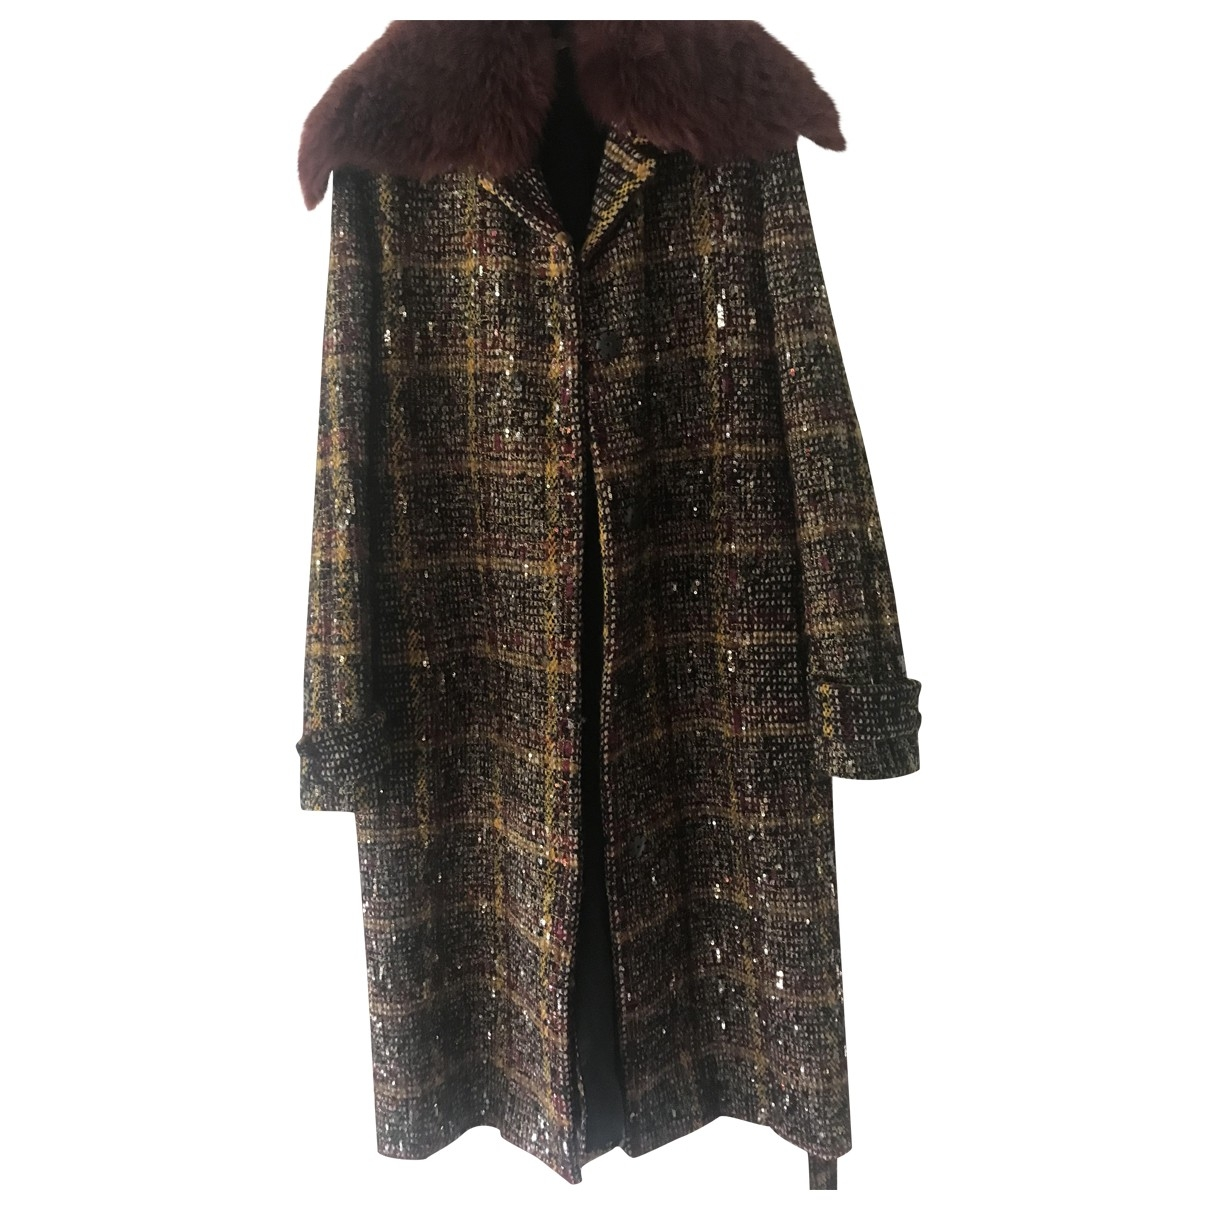 Bottega Veneta \N Multicolour Wool coat for Women 36 IT